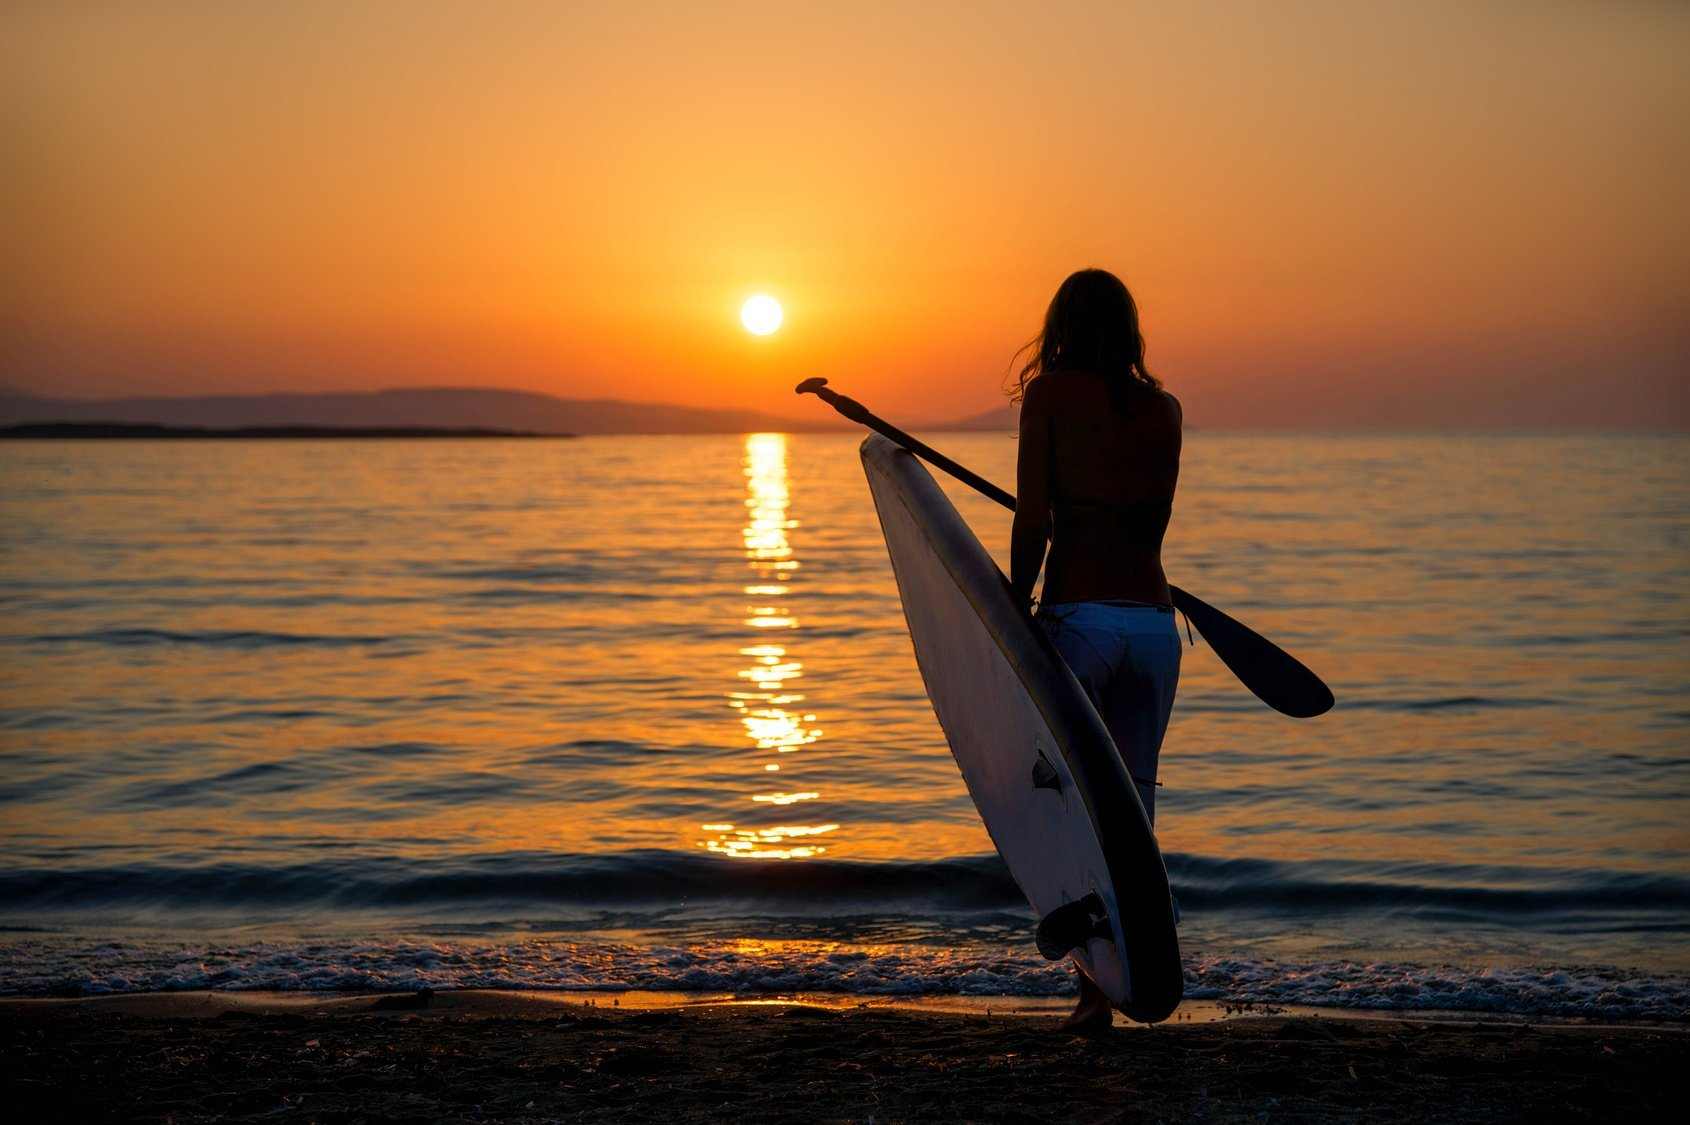 Best Paddleboard Reviews